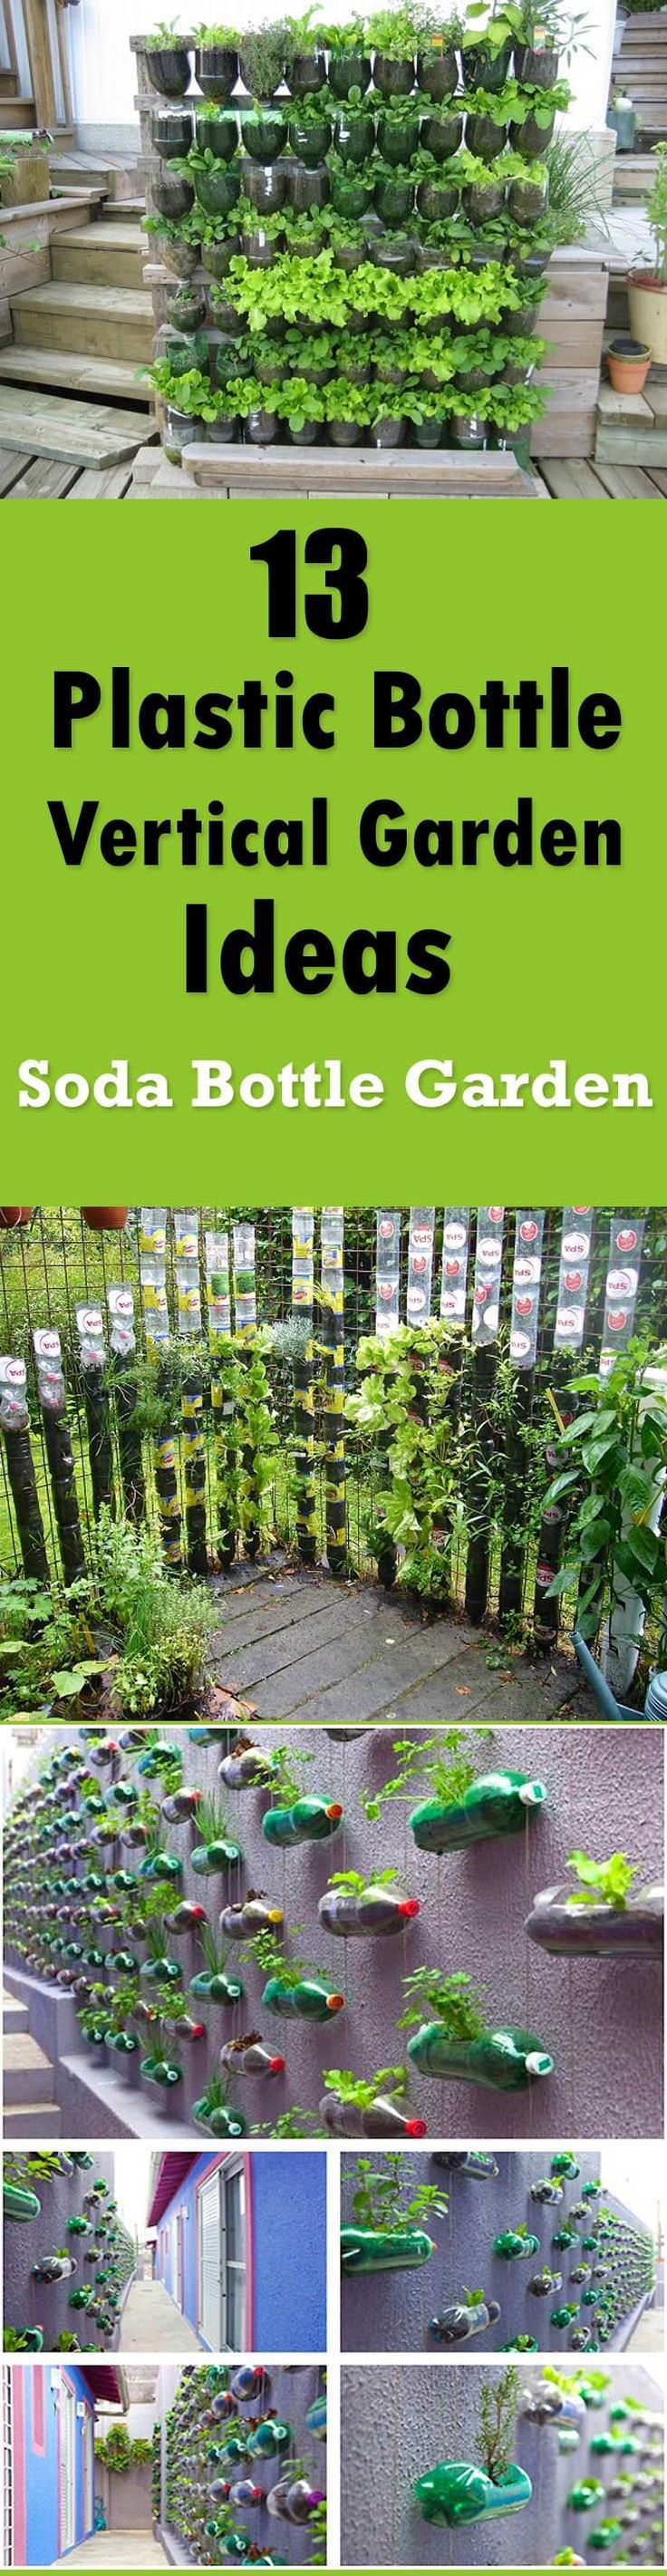 Follow these 13 plastic bottle vertical garden ideas to make something amazing out of them. Repurpose those old bottles, which you usually throw away to grow your favorite plants either indoor or outdoor and help to save our environment. Here are 13 inspiring plastic bottle vertical garden ideas to make a vertical soda bottle garden and these ideas will definitely interest you if you are a creative person, DIY lover and love to recycle.